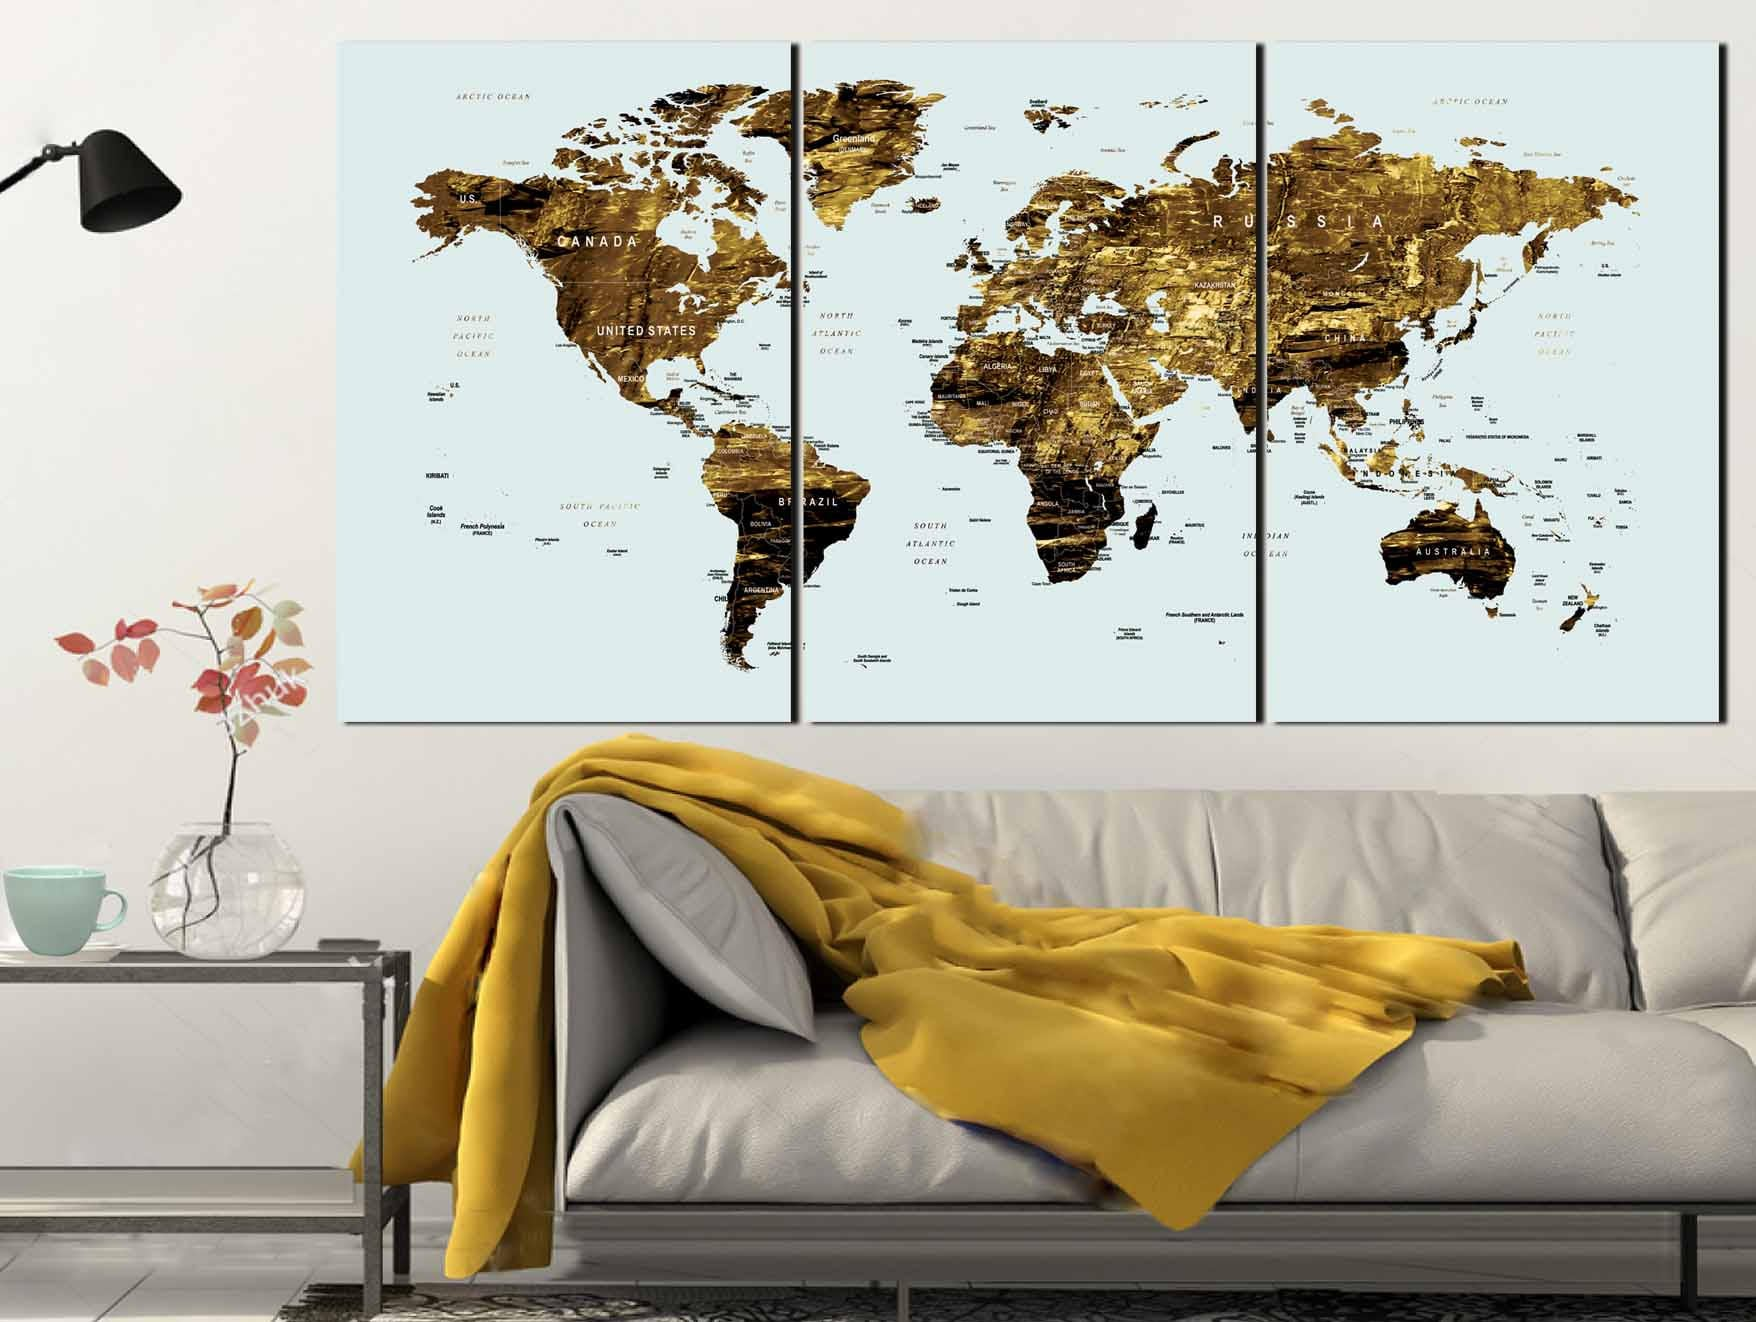 Gold color map artworld map canvas artworld map wall artlarge gold color map artworld map canvas artworld map wall artlarge world mapworld map push pinworld map printworld map artabstract map art gumiabroncs Images